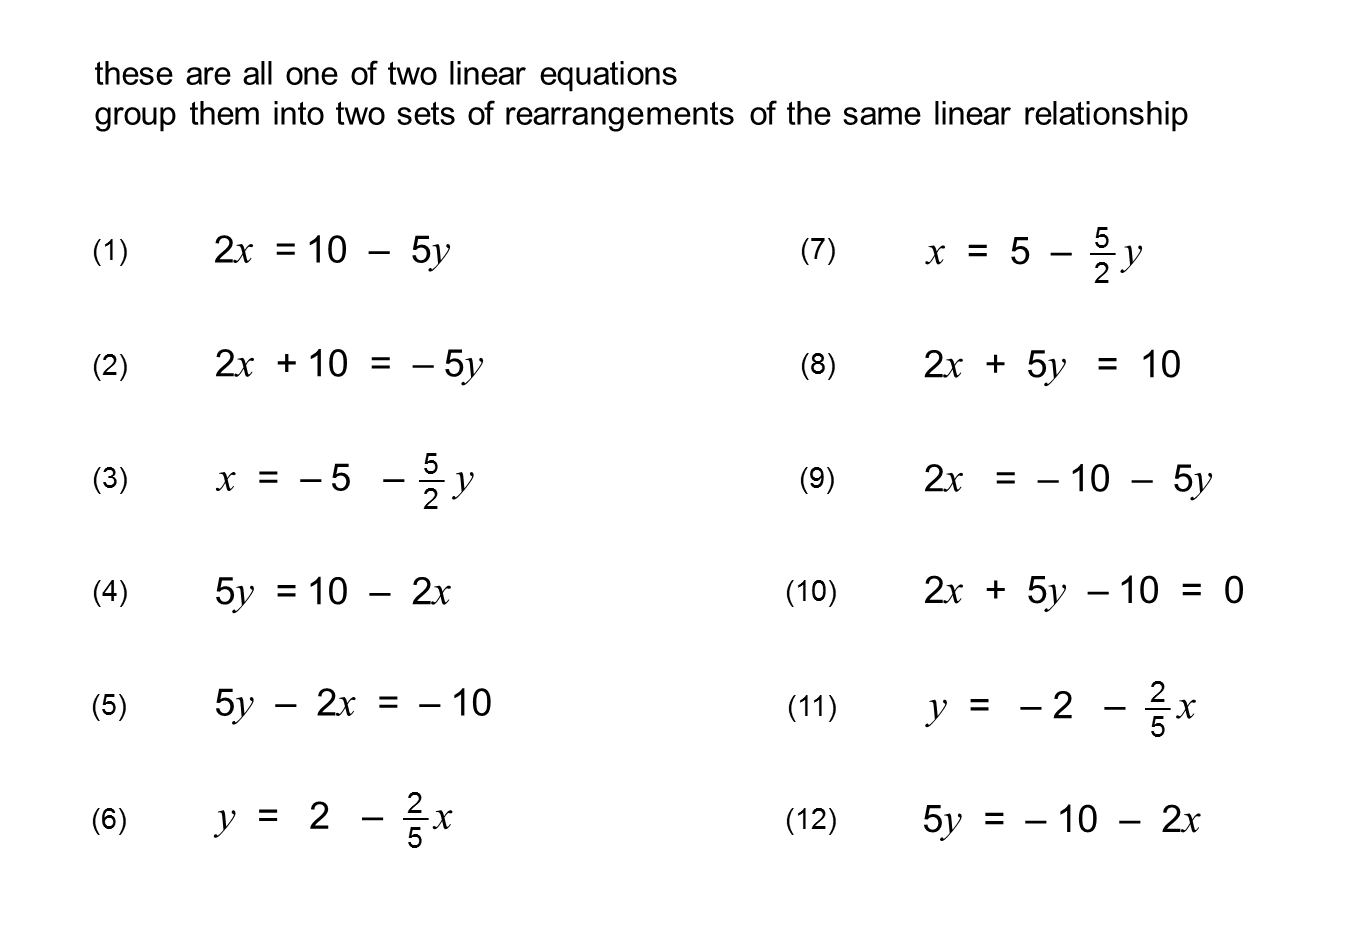 worksheet Rearranging rearranging equations into ymxc lessonpaths source 4 bp blogspot com